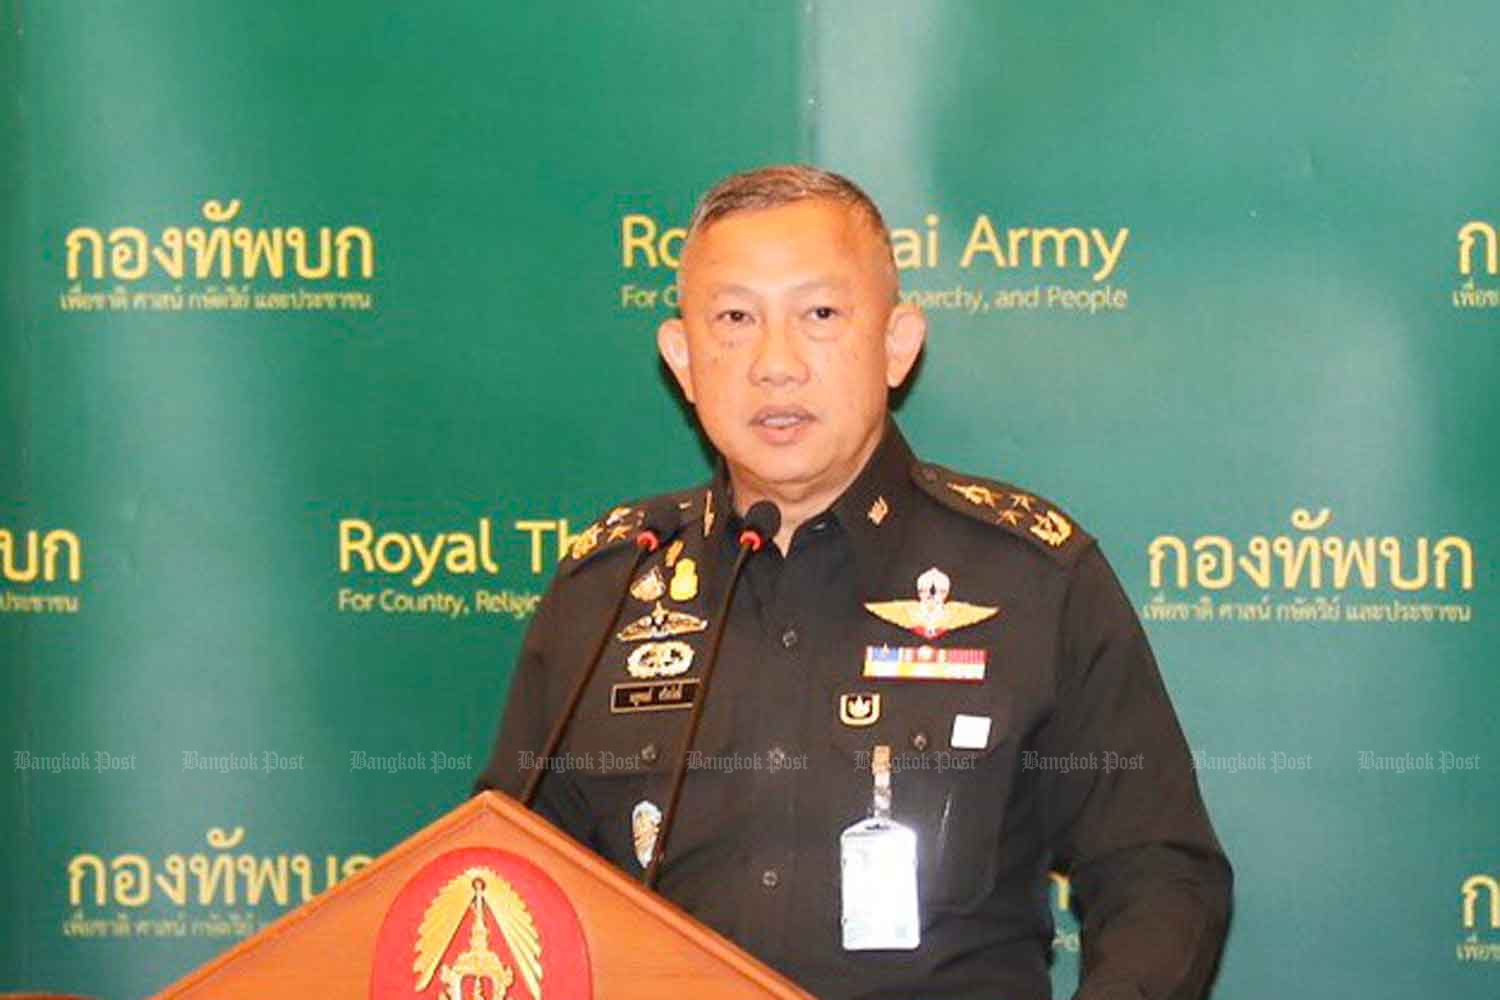 Gen Nathaphon Srisawat, special adviser to the army.